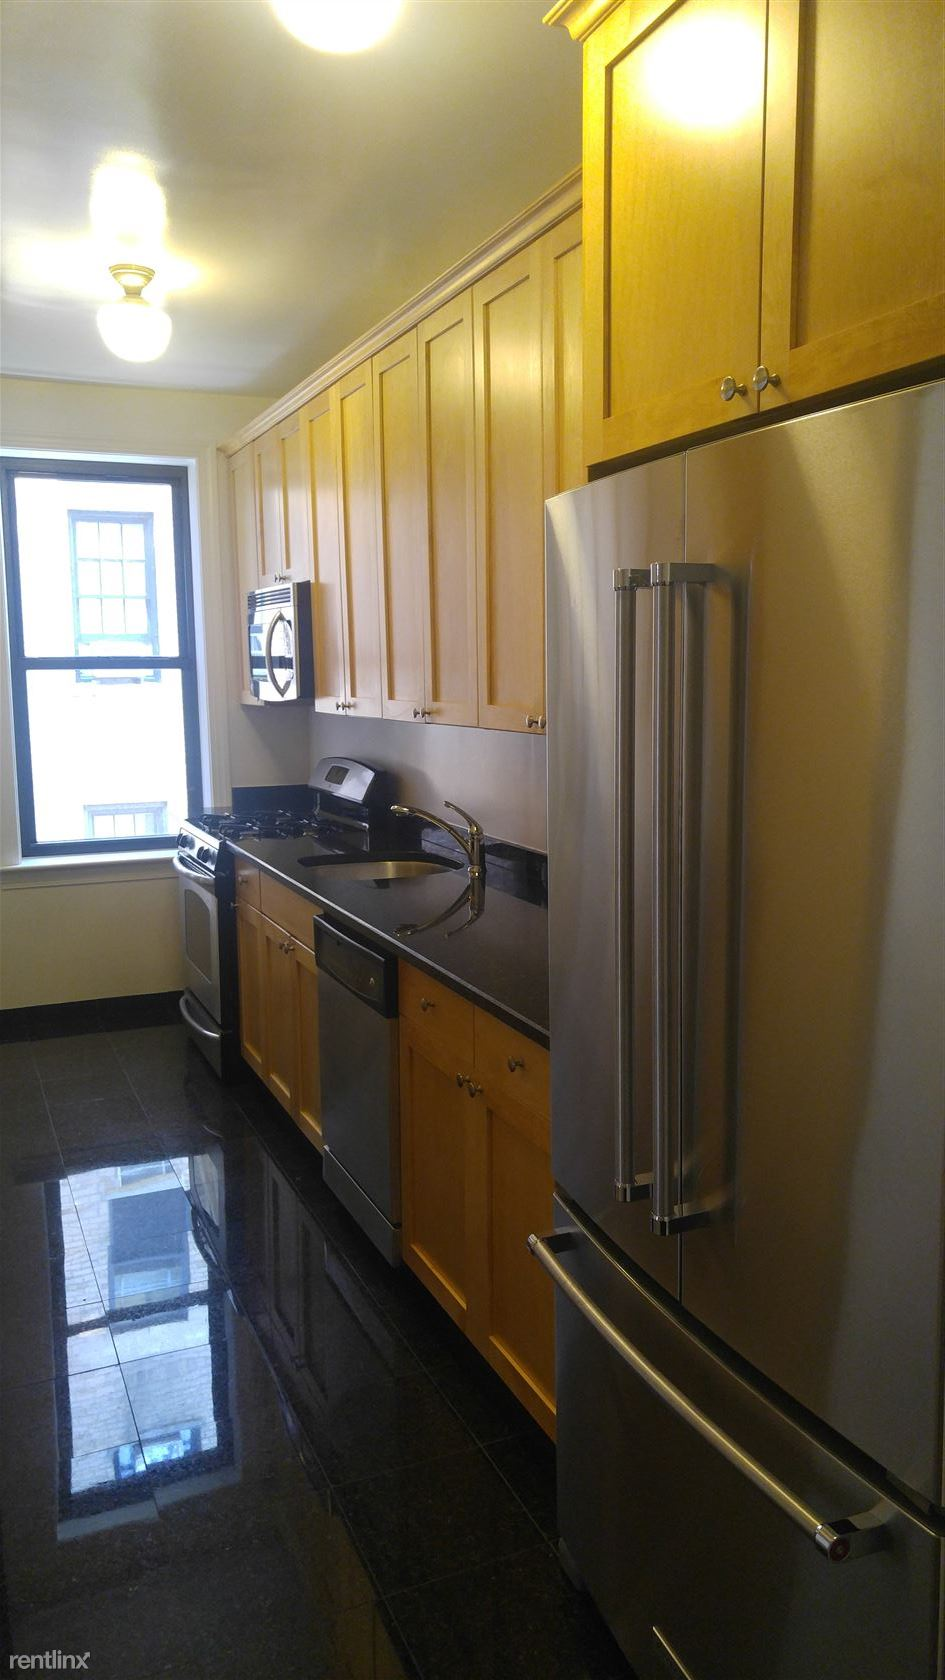 115 E 92nd St, New York, NY - $13,550 USD/ month